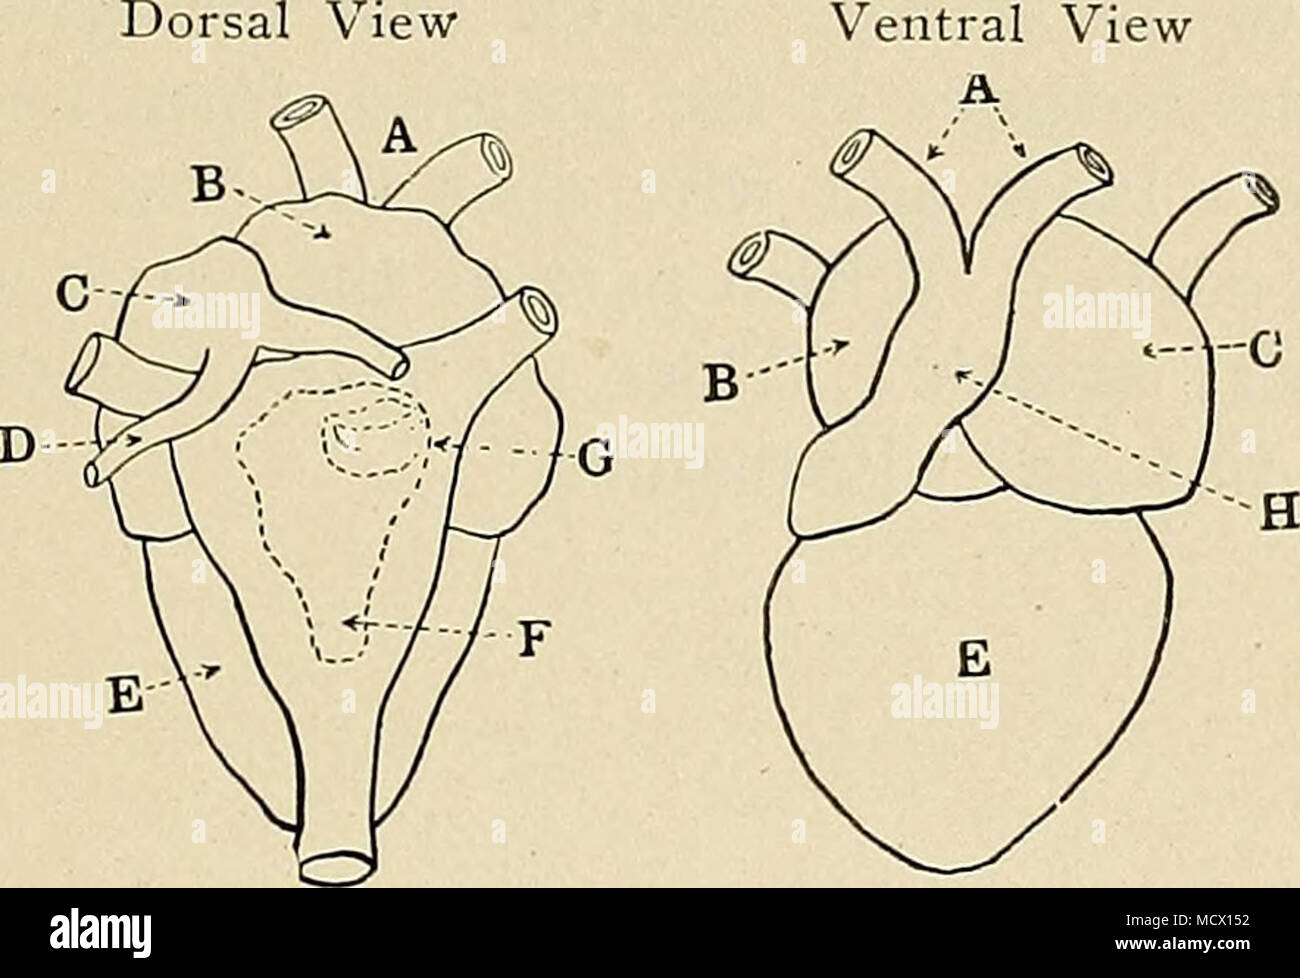 . Fig. 13. The gross anatomy of frog's heart. (Ventral view after Cyon, dorsal -view after Howes.) A, aortae; B, right auricle; C, left auricle; D, pulmonary vein; F,' ventricle; F, sinus venosus; G, sino-auricular valves; H, bulbus .arteriosus. b. Origin and Course of the Wave of Contraction. T.—Inspfction.—Try to observe the place where the wave of contraction begins, and the order in which it spreads over the different chambers of the heart. See that when a part contracts and drives the blood out, it grows paler, while the part receiving the blood swells and flushes. The change of color beg - Stock Image